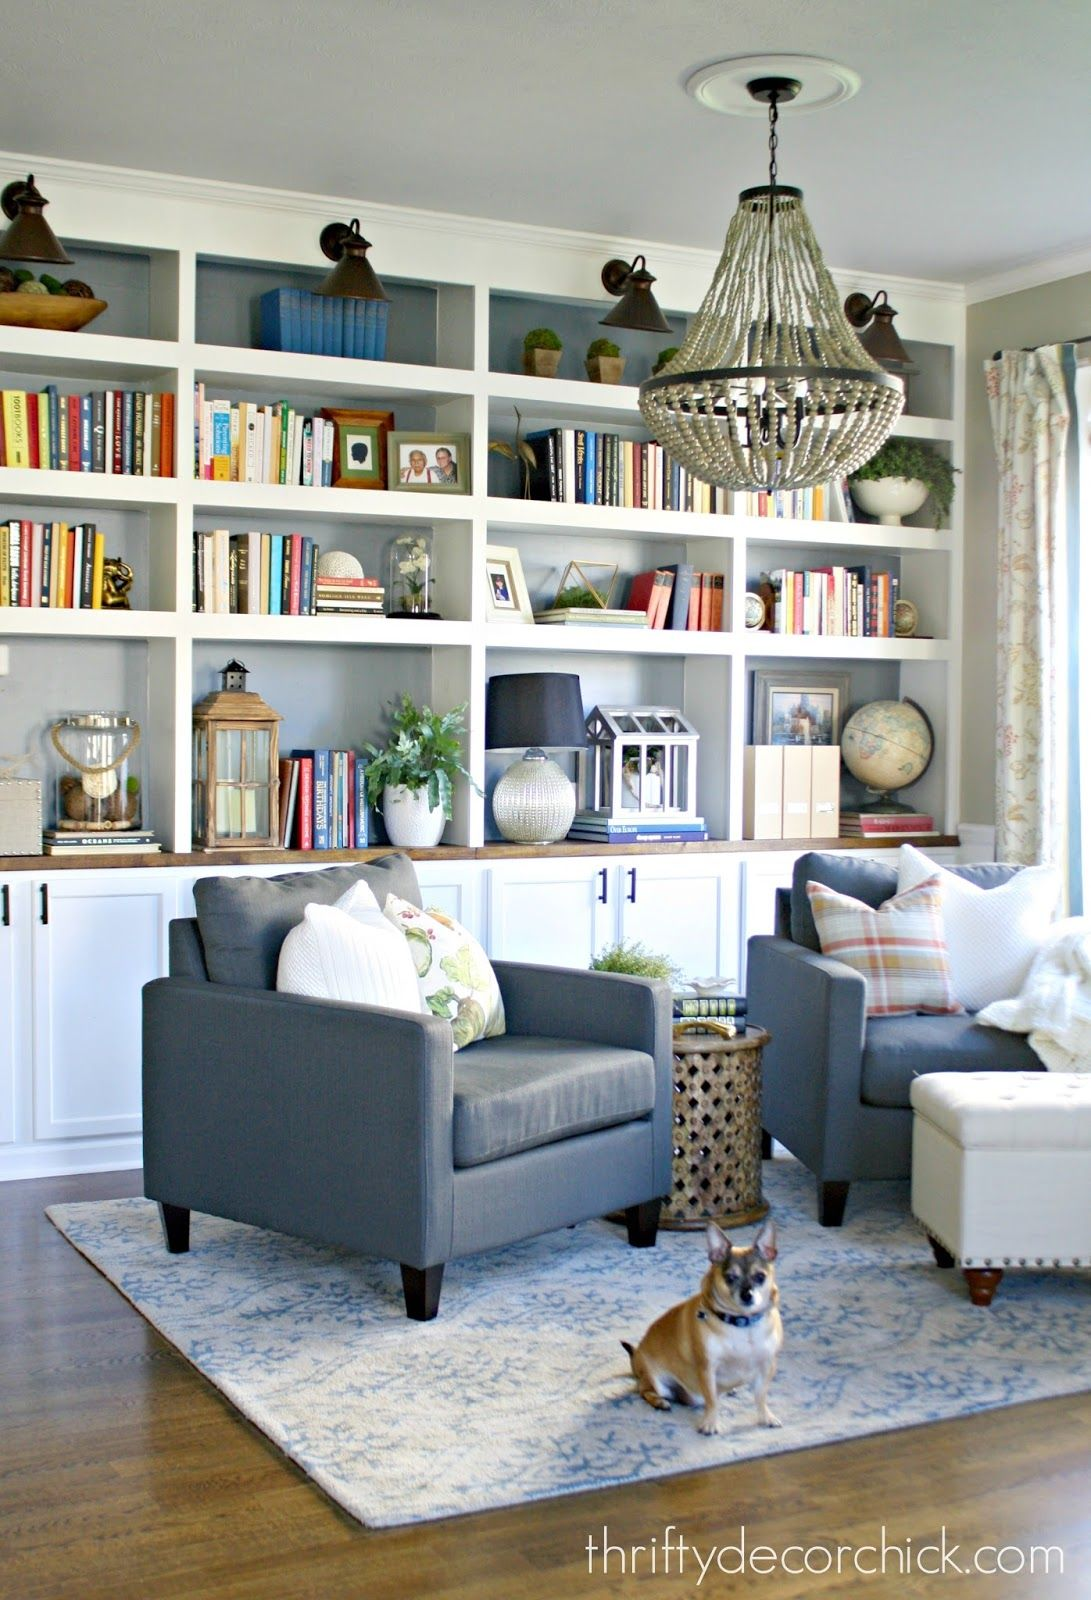 Living Room Library Design Ideas: The Library Is Complete! (for Real This Time)